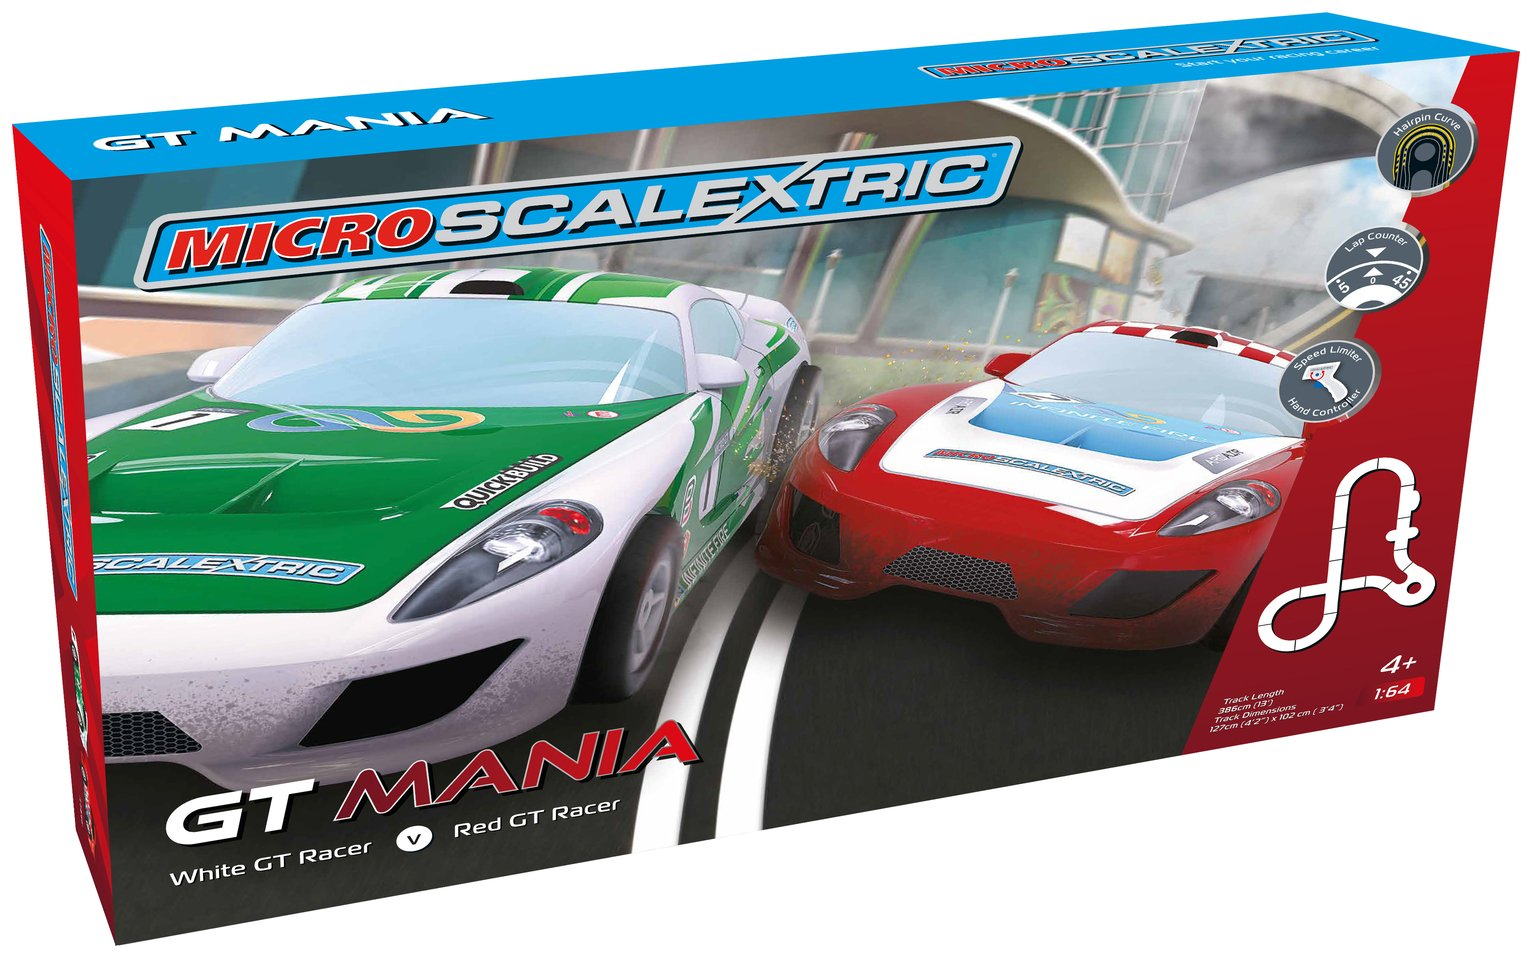 Scalextric GT Mania Playset